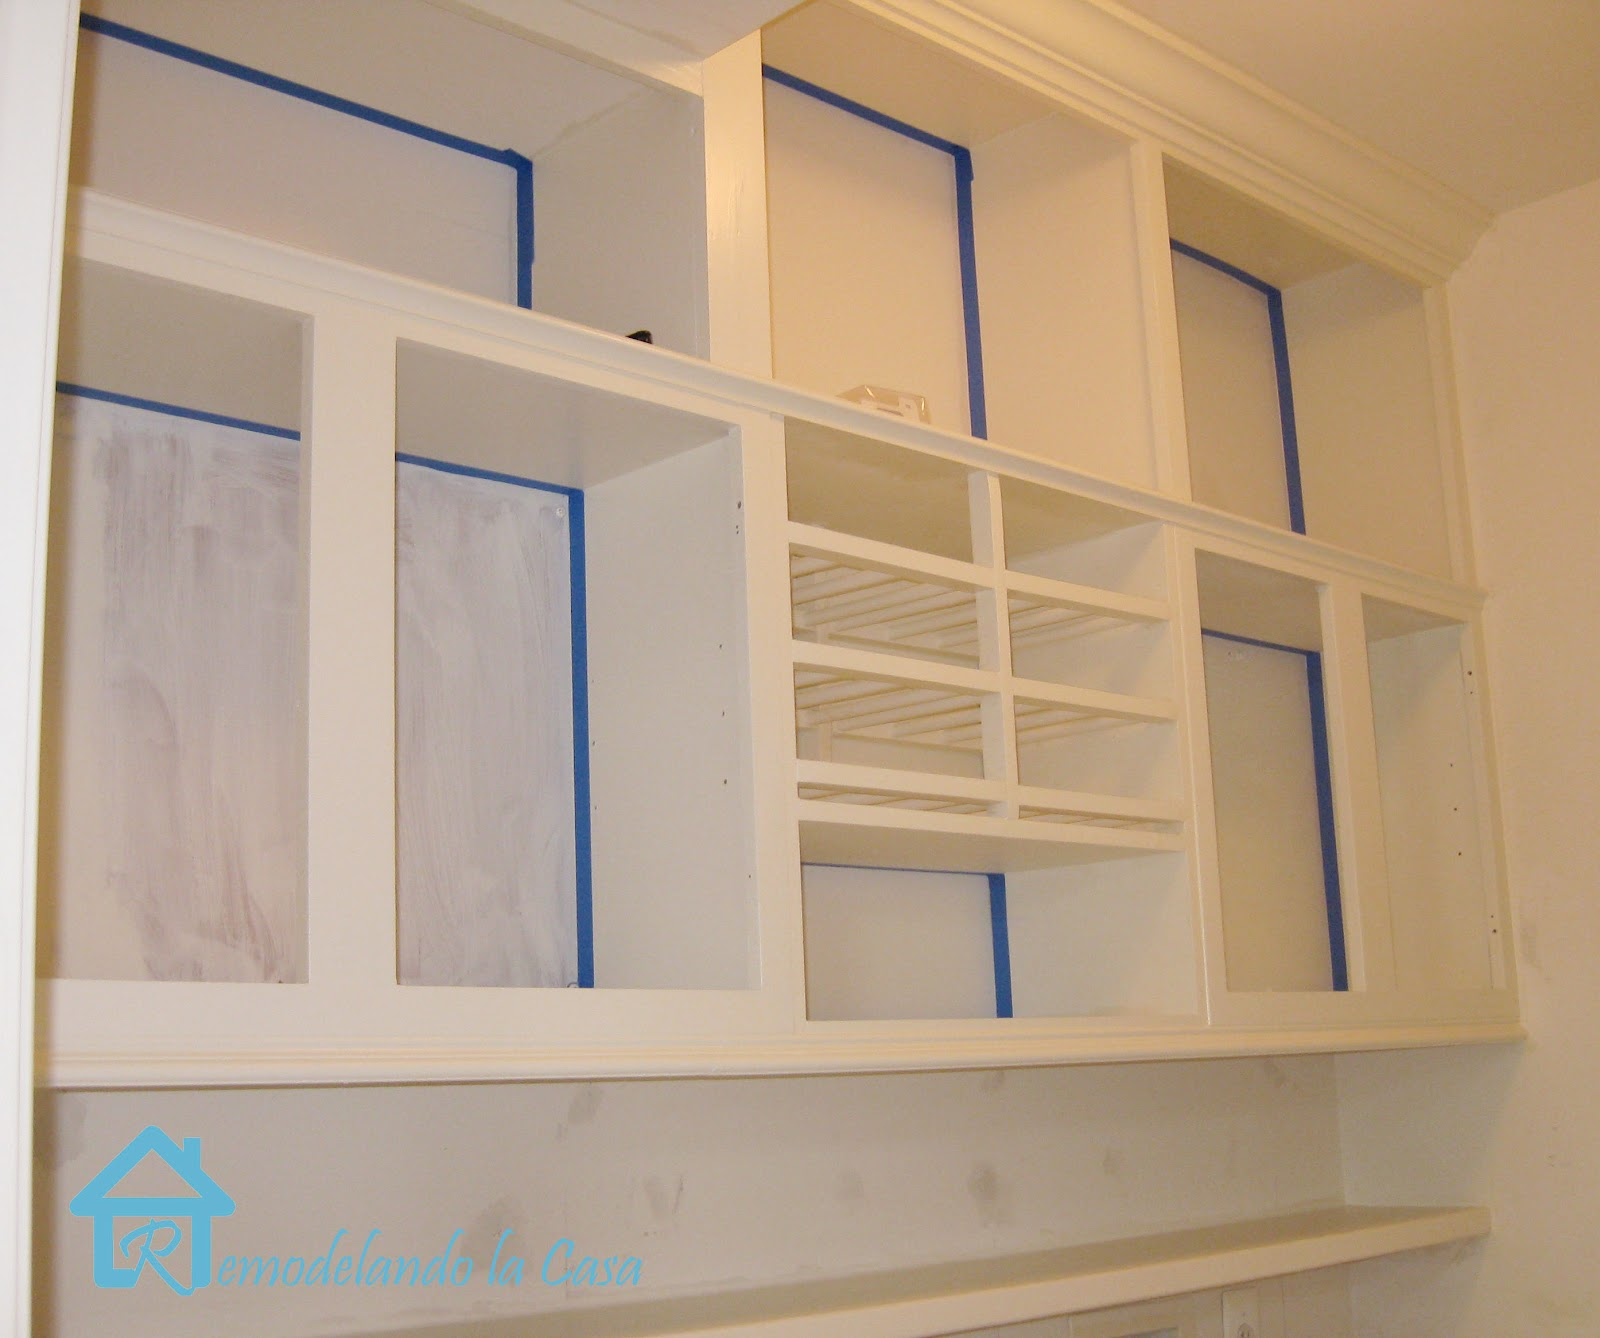 Move Existing Cabinets Up On The Wall To Have Up To The: Building The Cabinets Up To The Ceiling